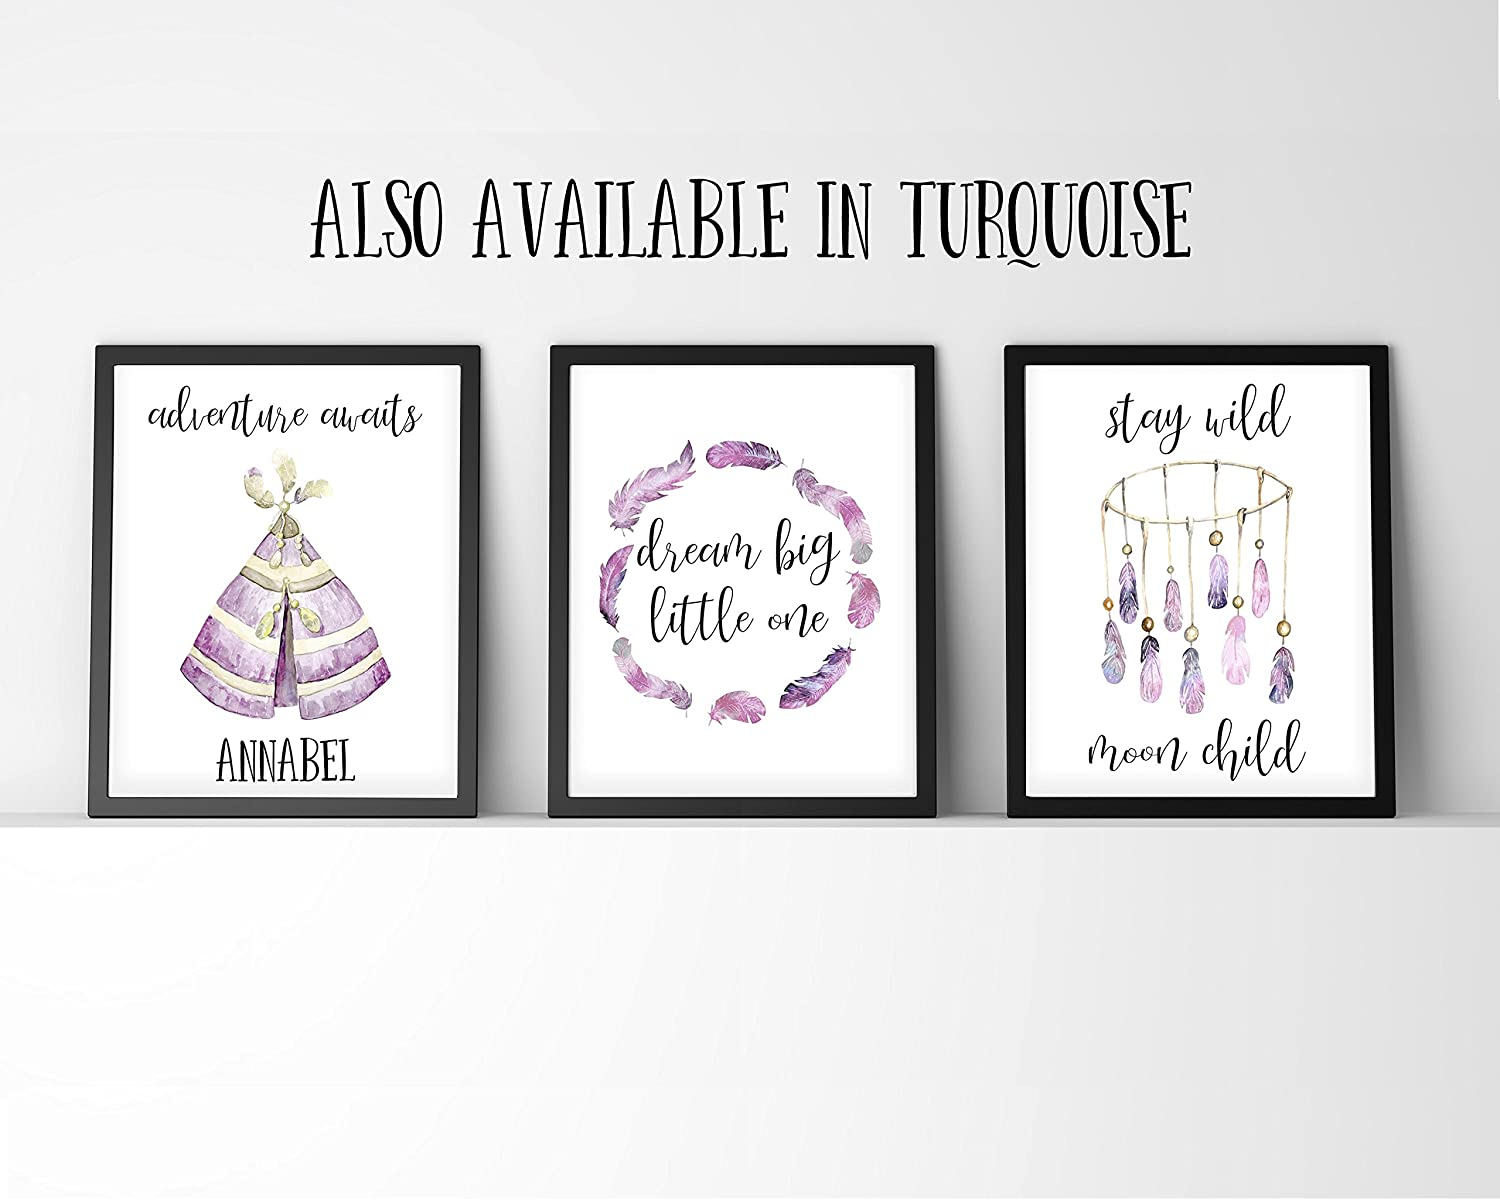 Adventure Awaits Print, Dream Big Little One Picture, Stay Wild Moon Child Wall Art, Set of 3 Prints